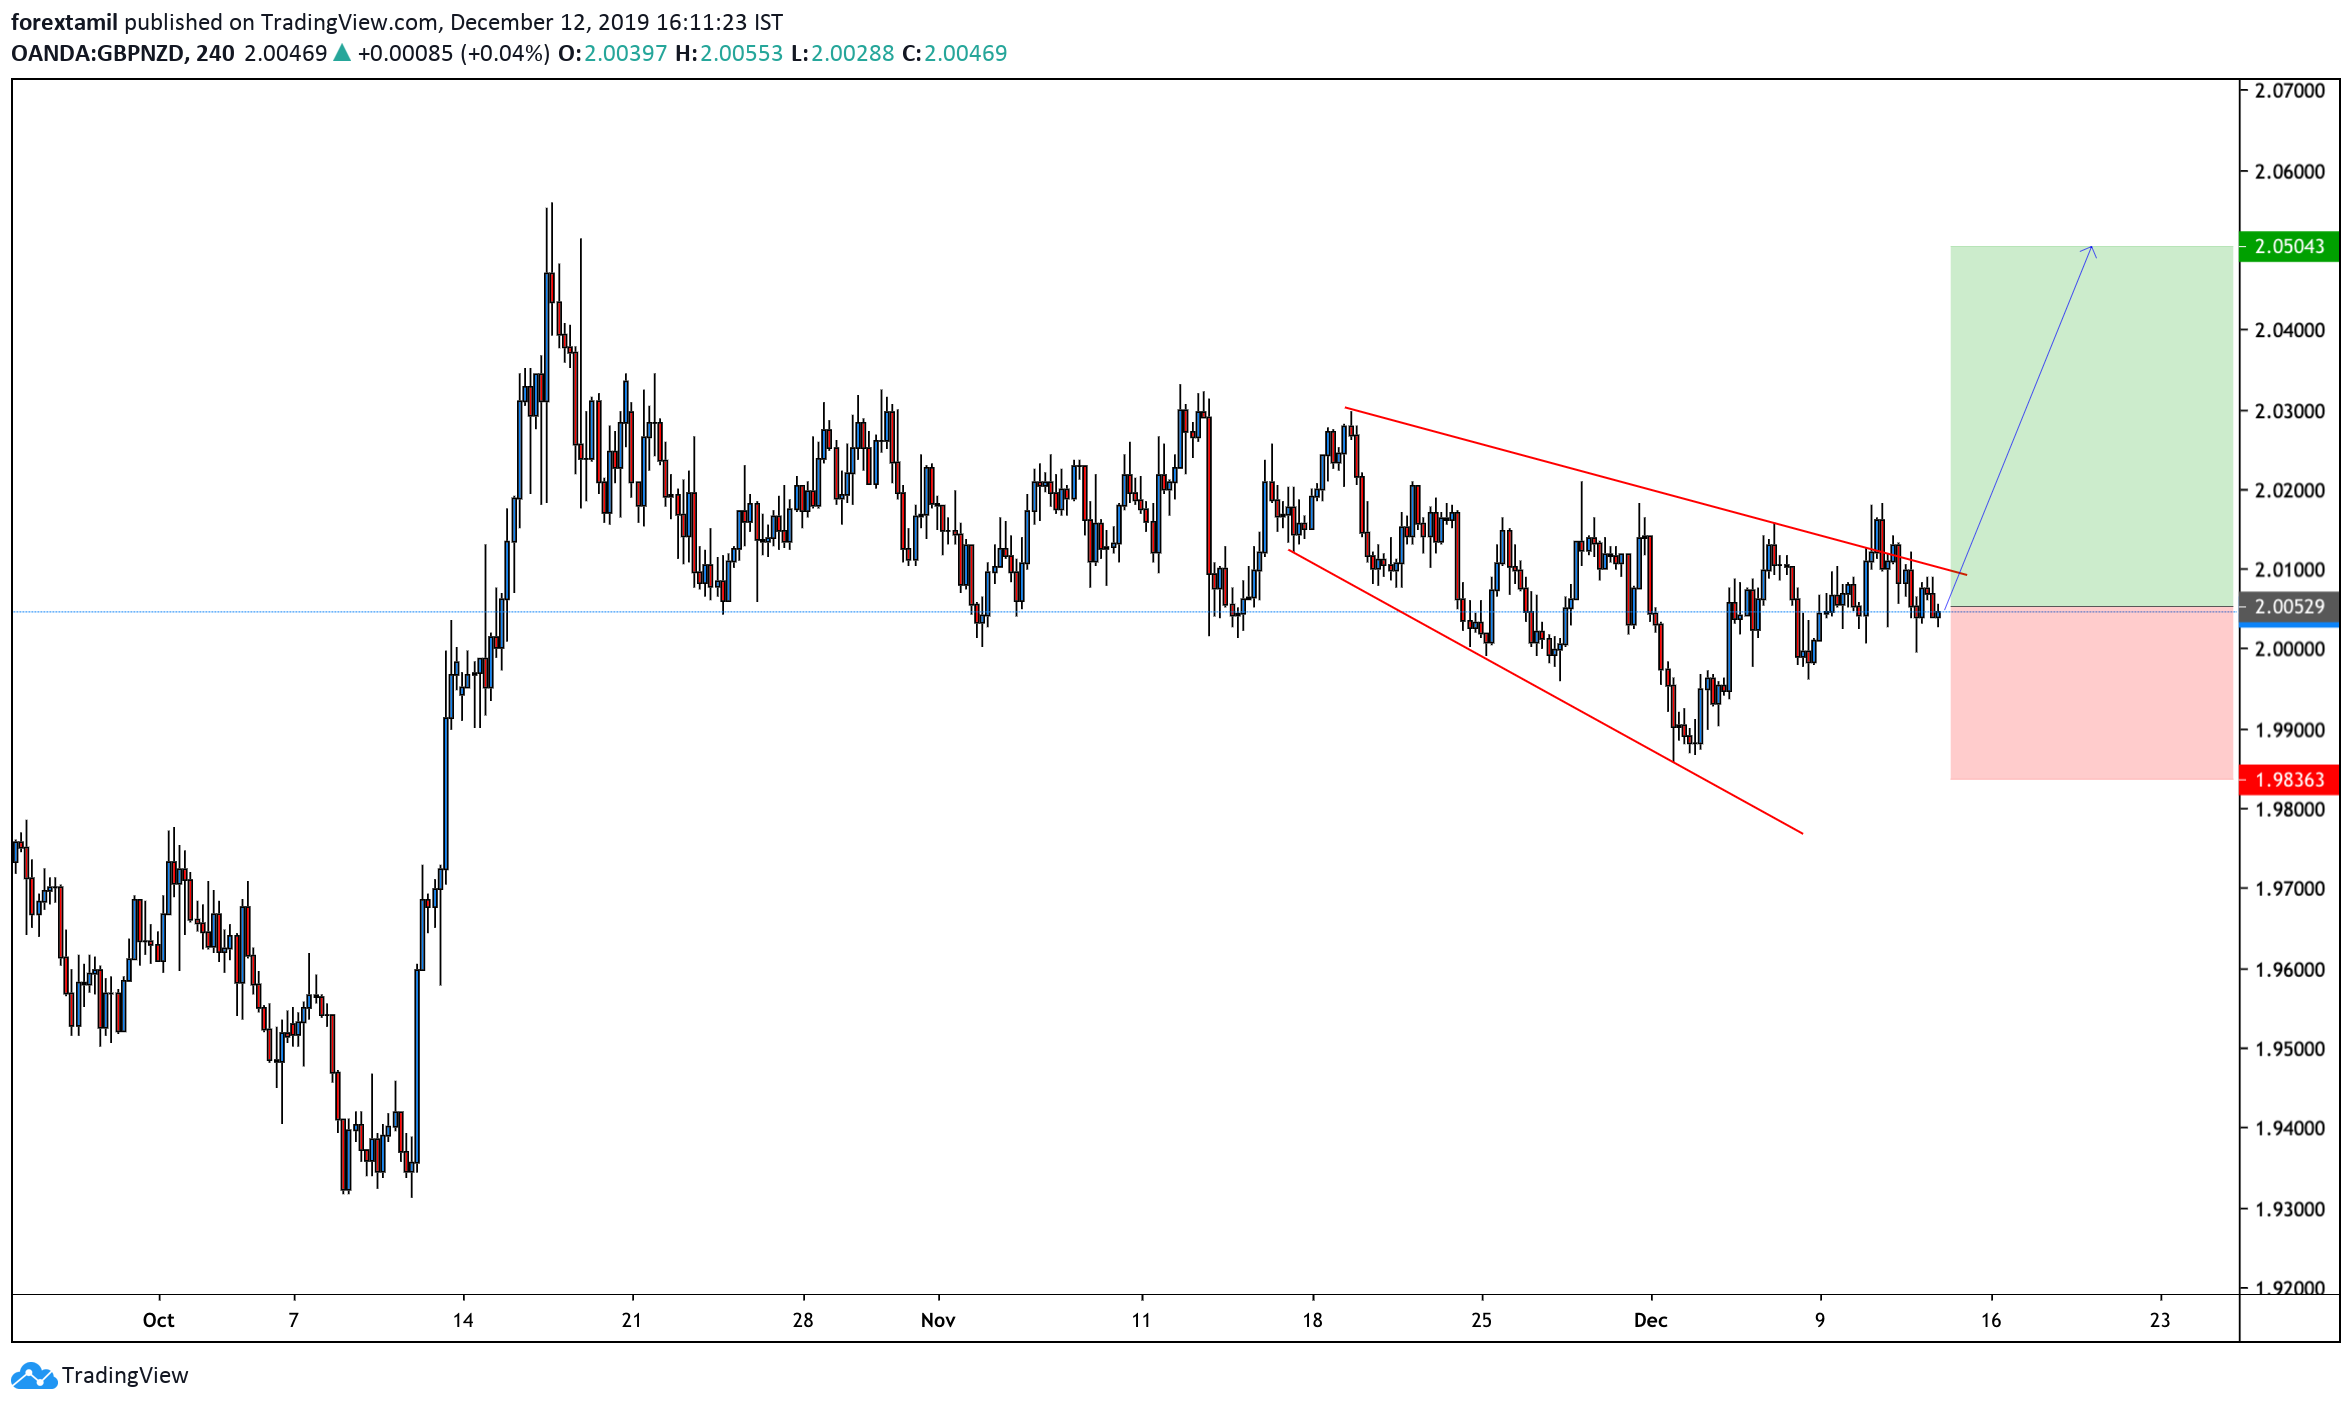 LONG:GBP/NZD:Sterling might show limited upside action on Tory's victory